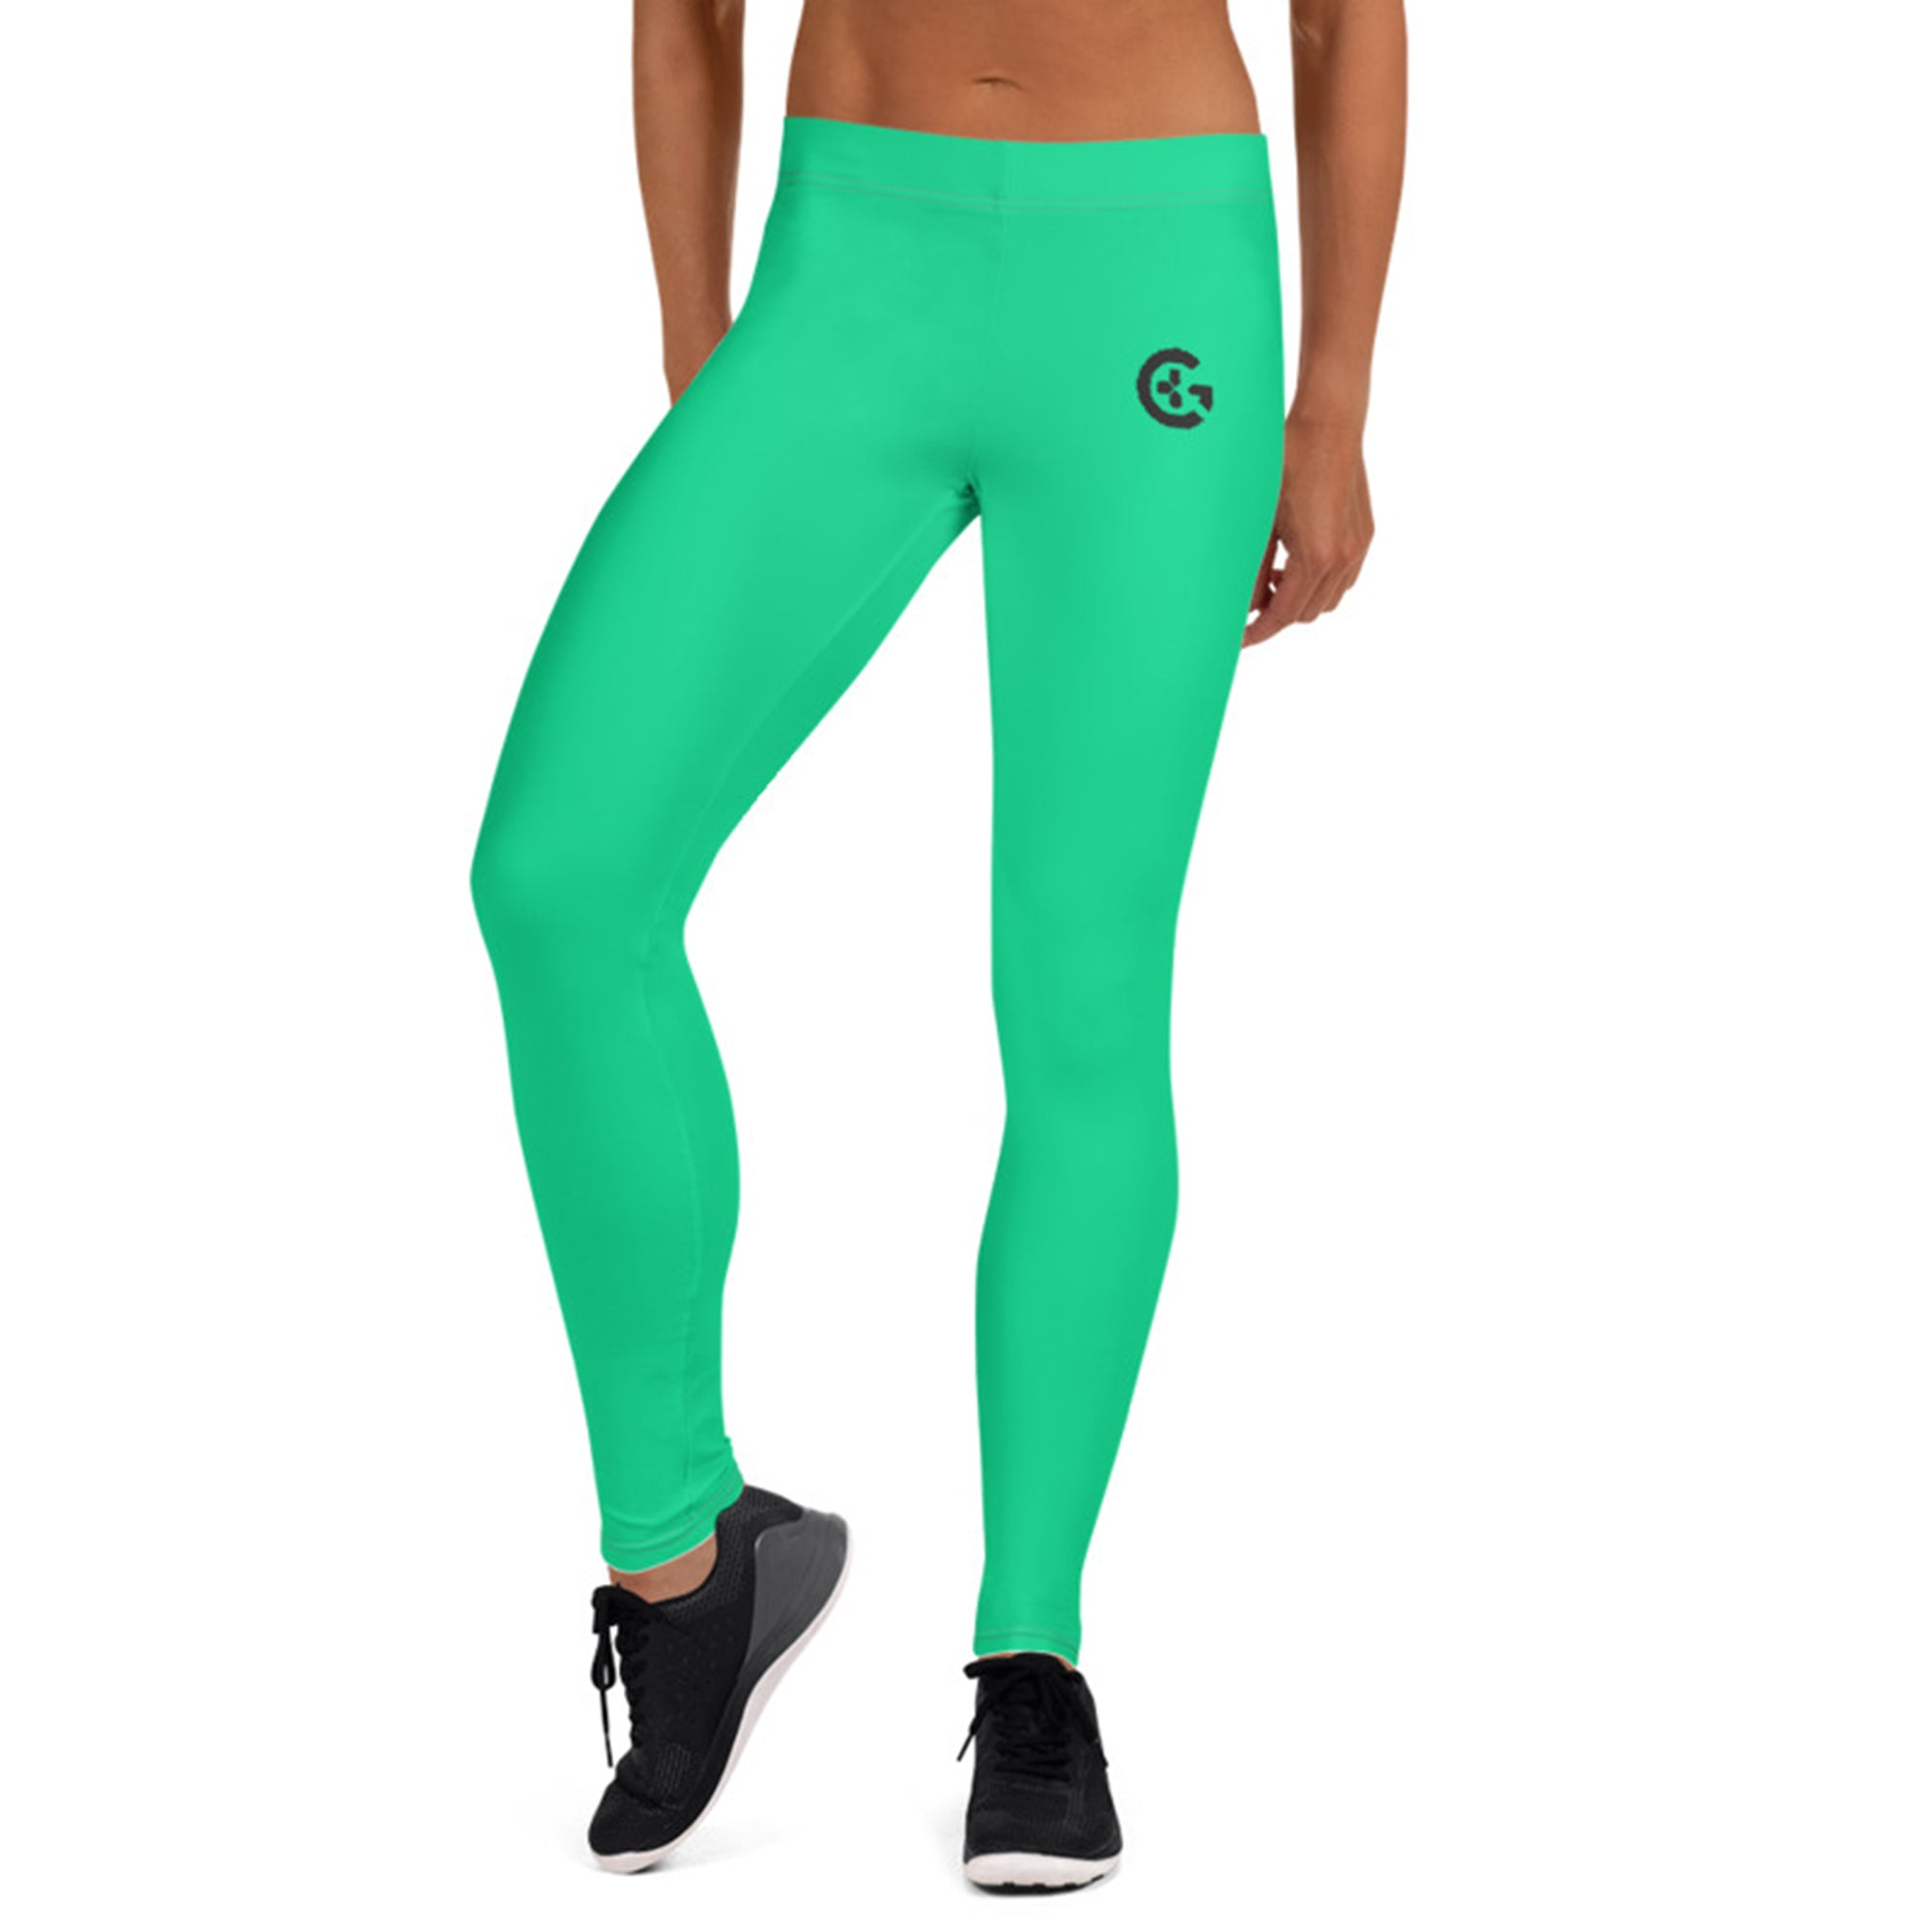 CGL leggings